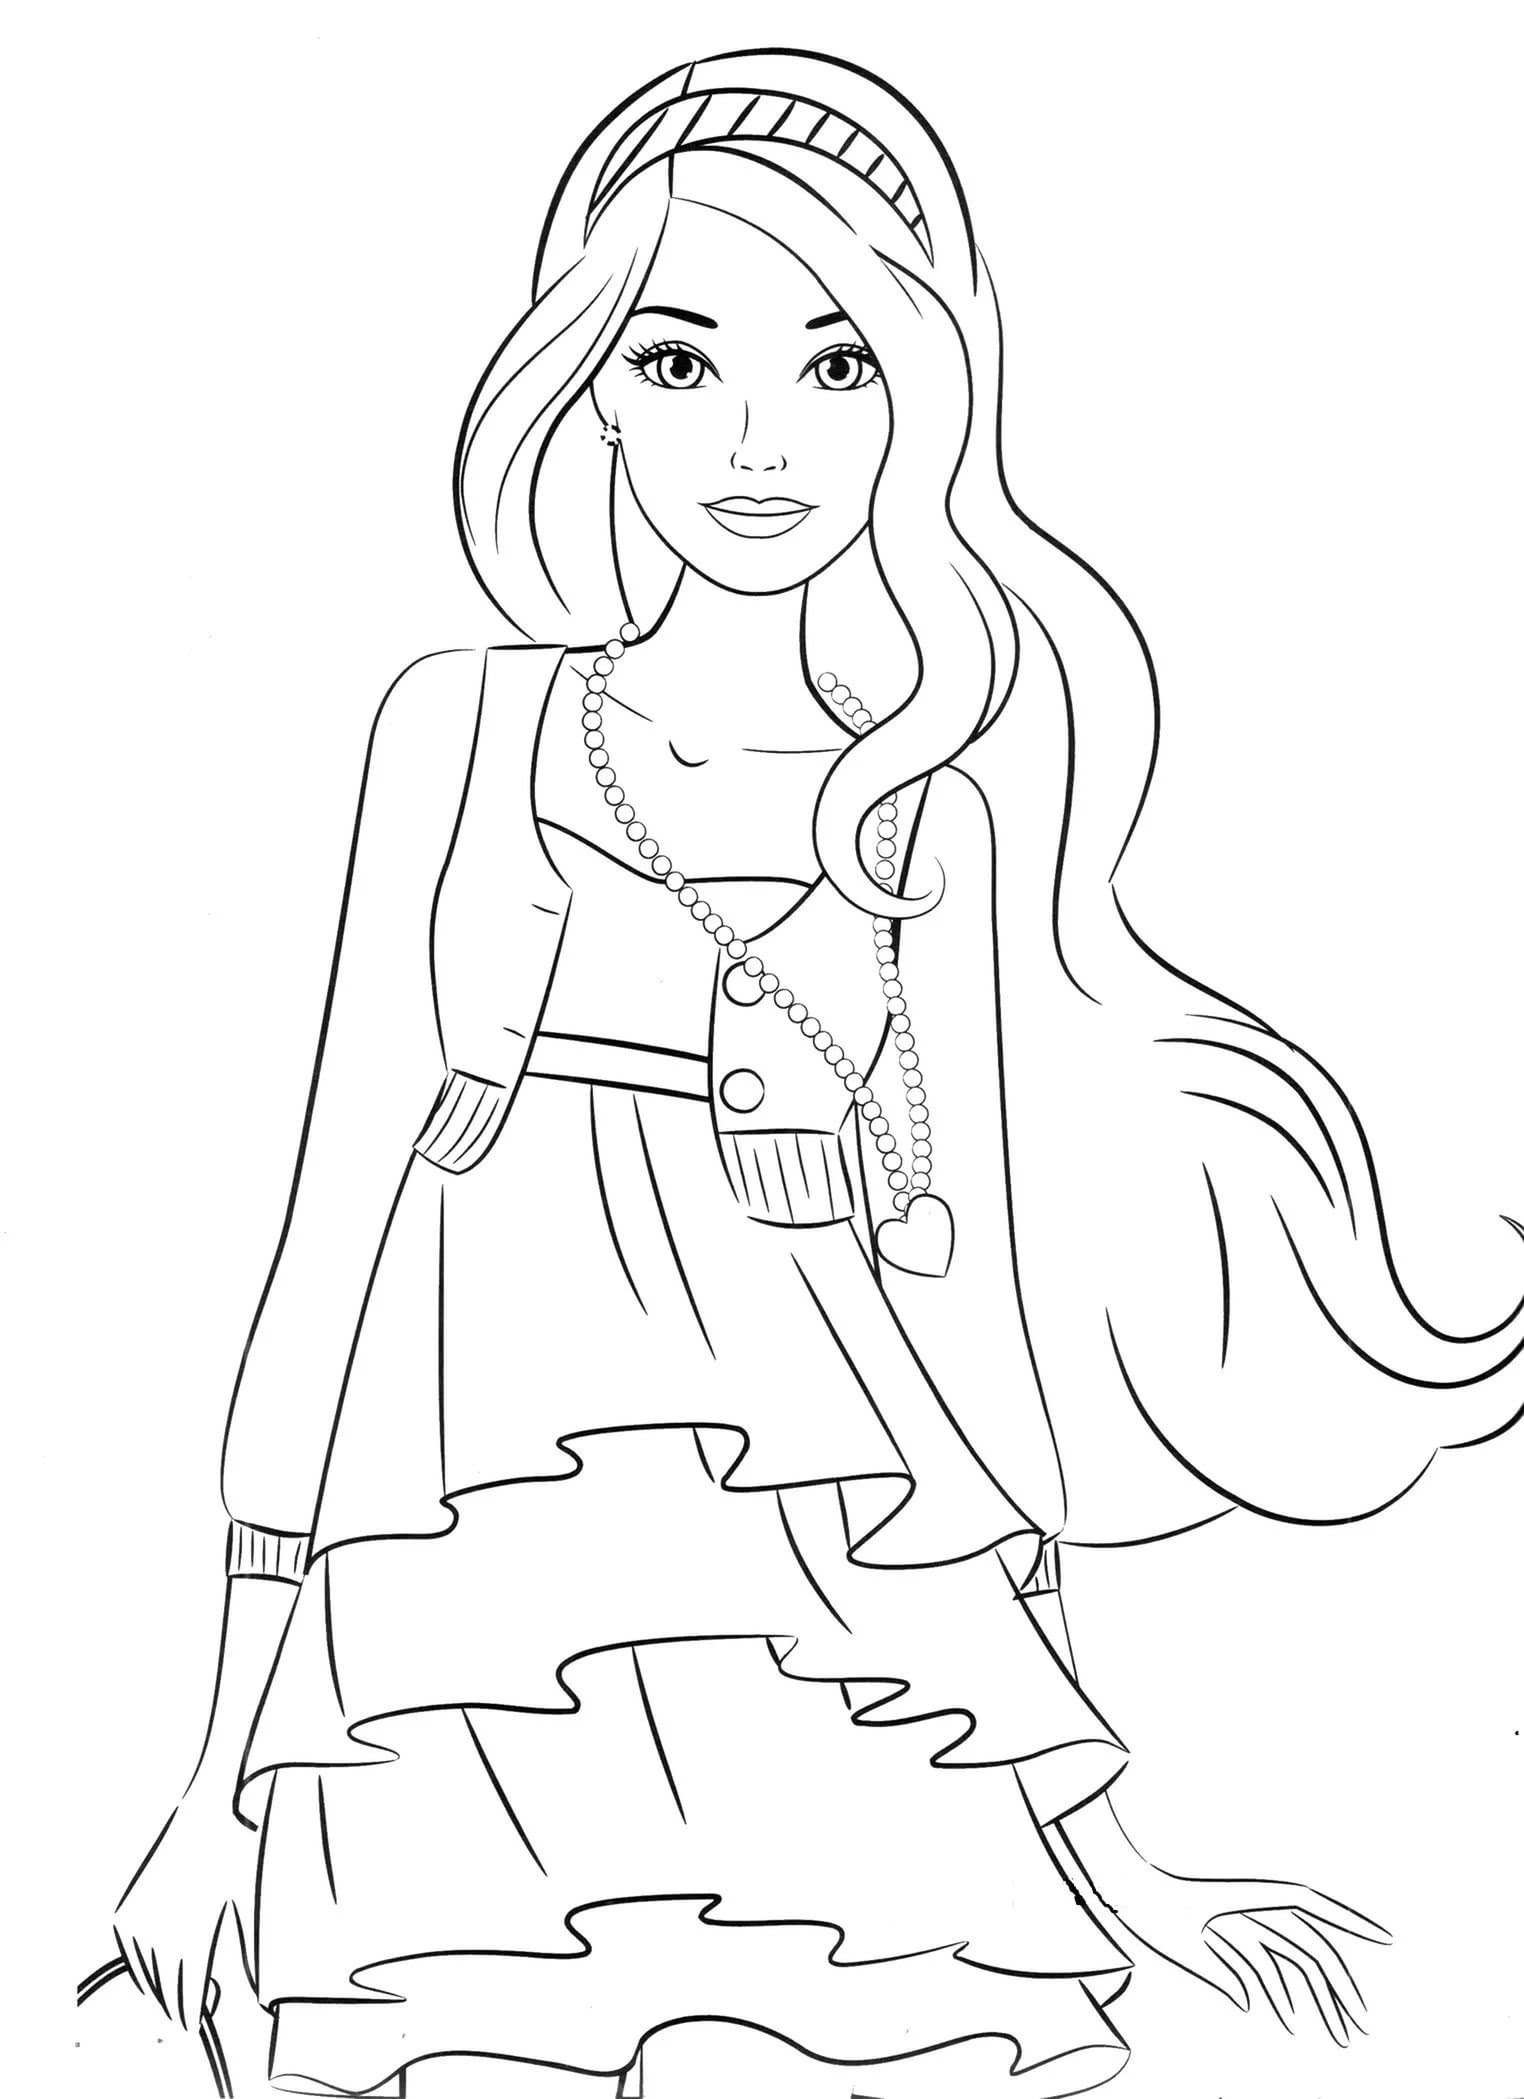 Coloring Pages For 8 Year Olds at GetColorings.com | Free ...